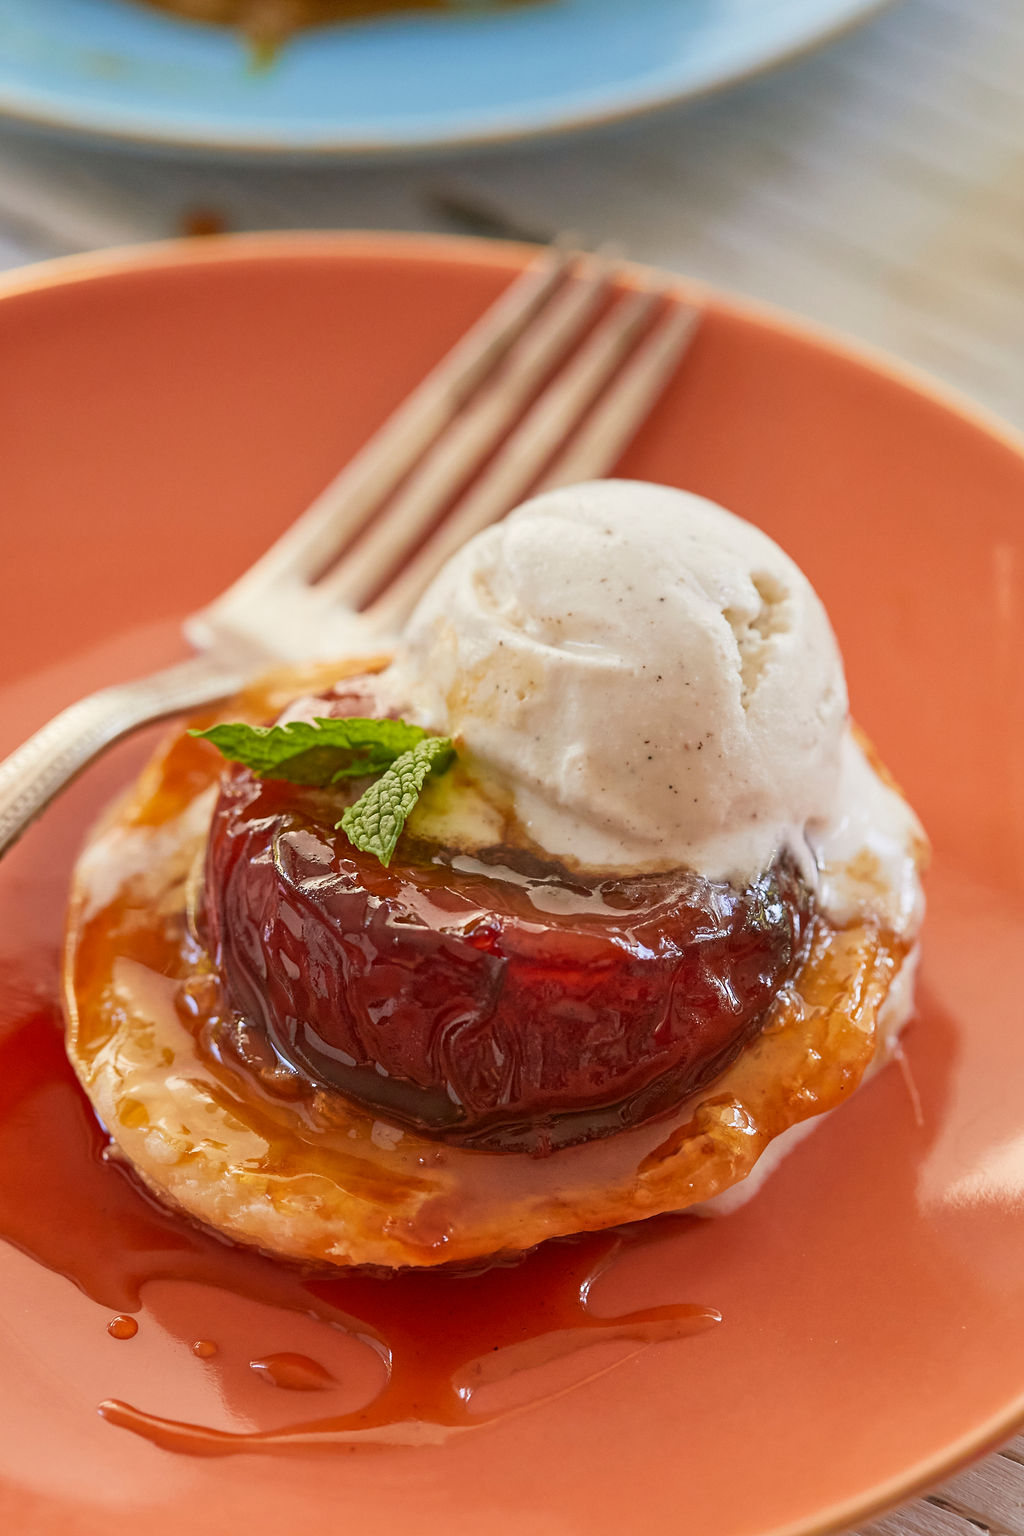 A close up of Homemade Peach Tarte Tatin, topped with vanilla ice cream, to show texture and consistency.